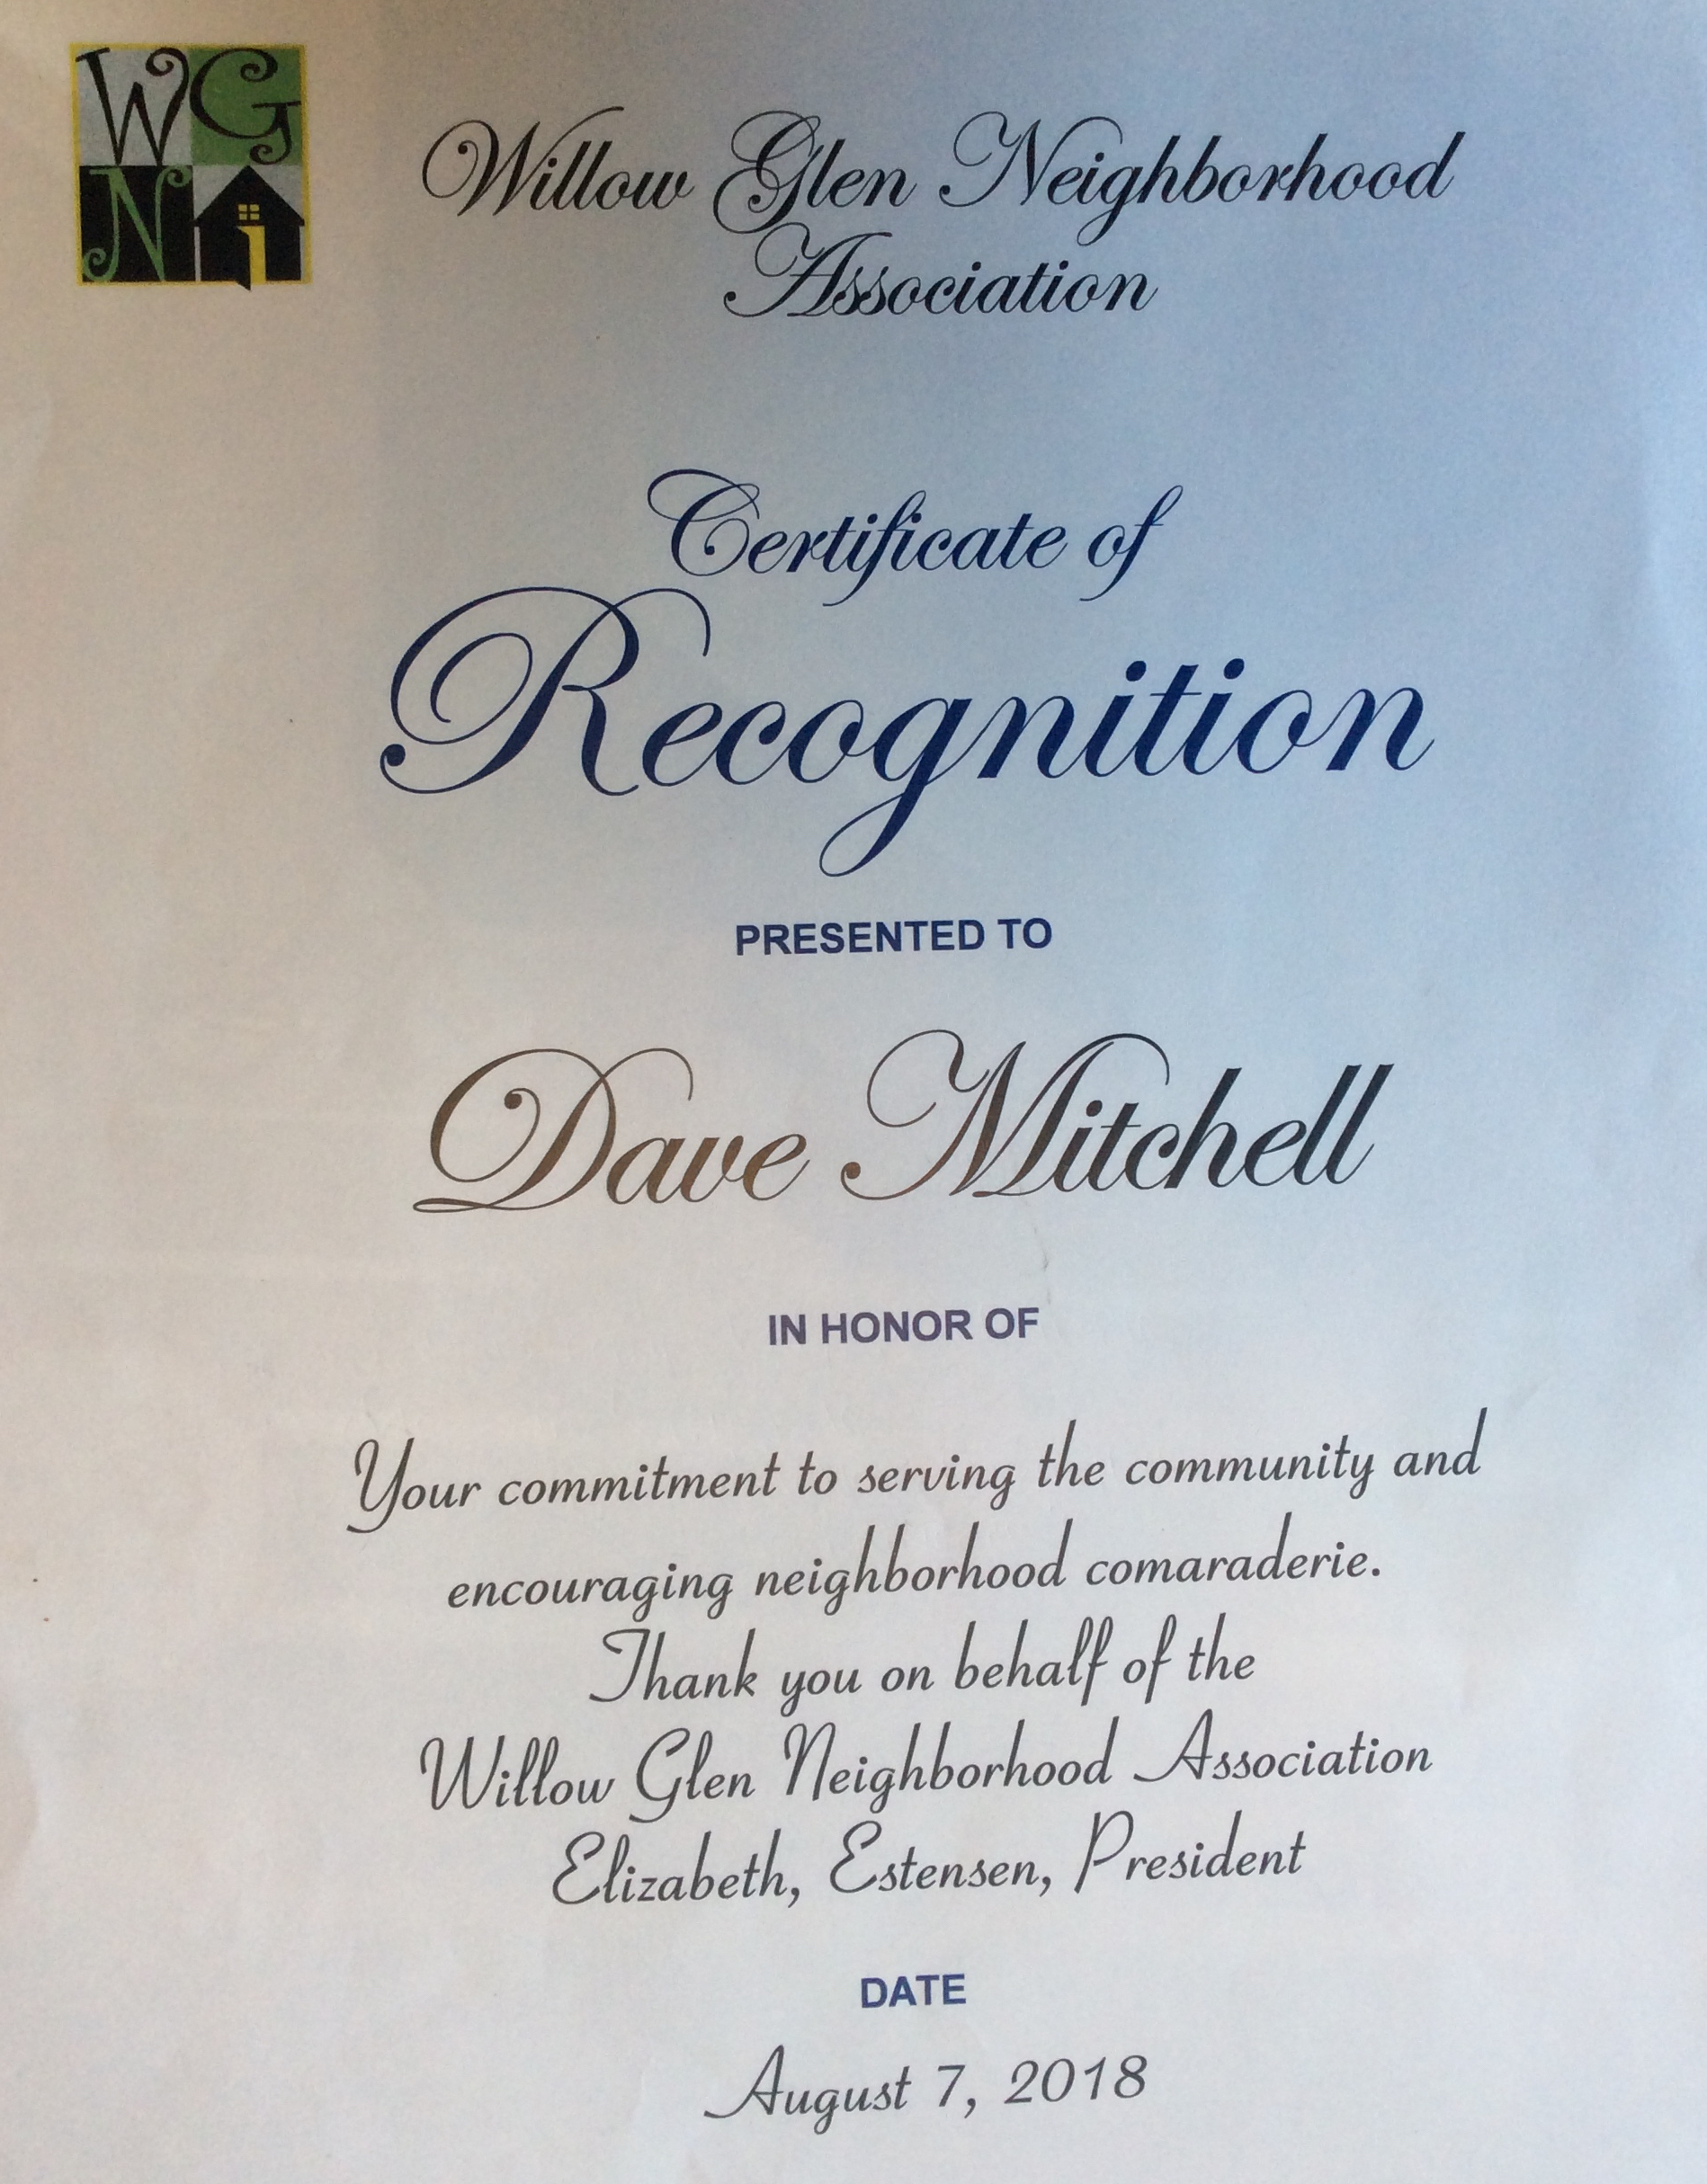 IMG_4327_Dave_Mitchell_Recognition.jpg